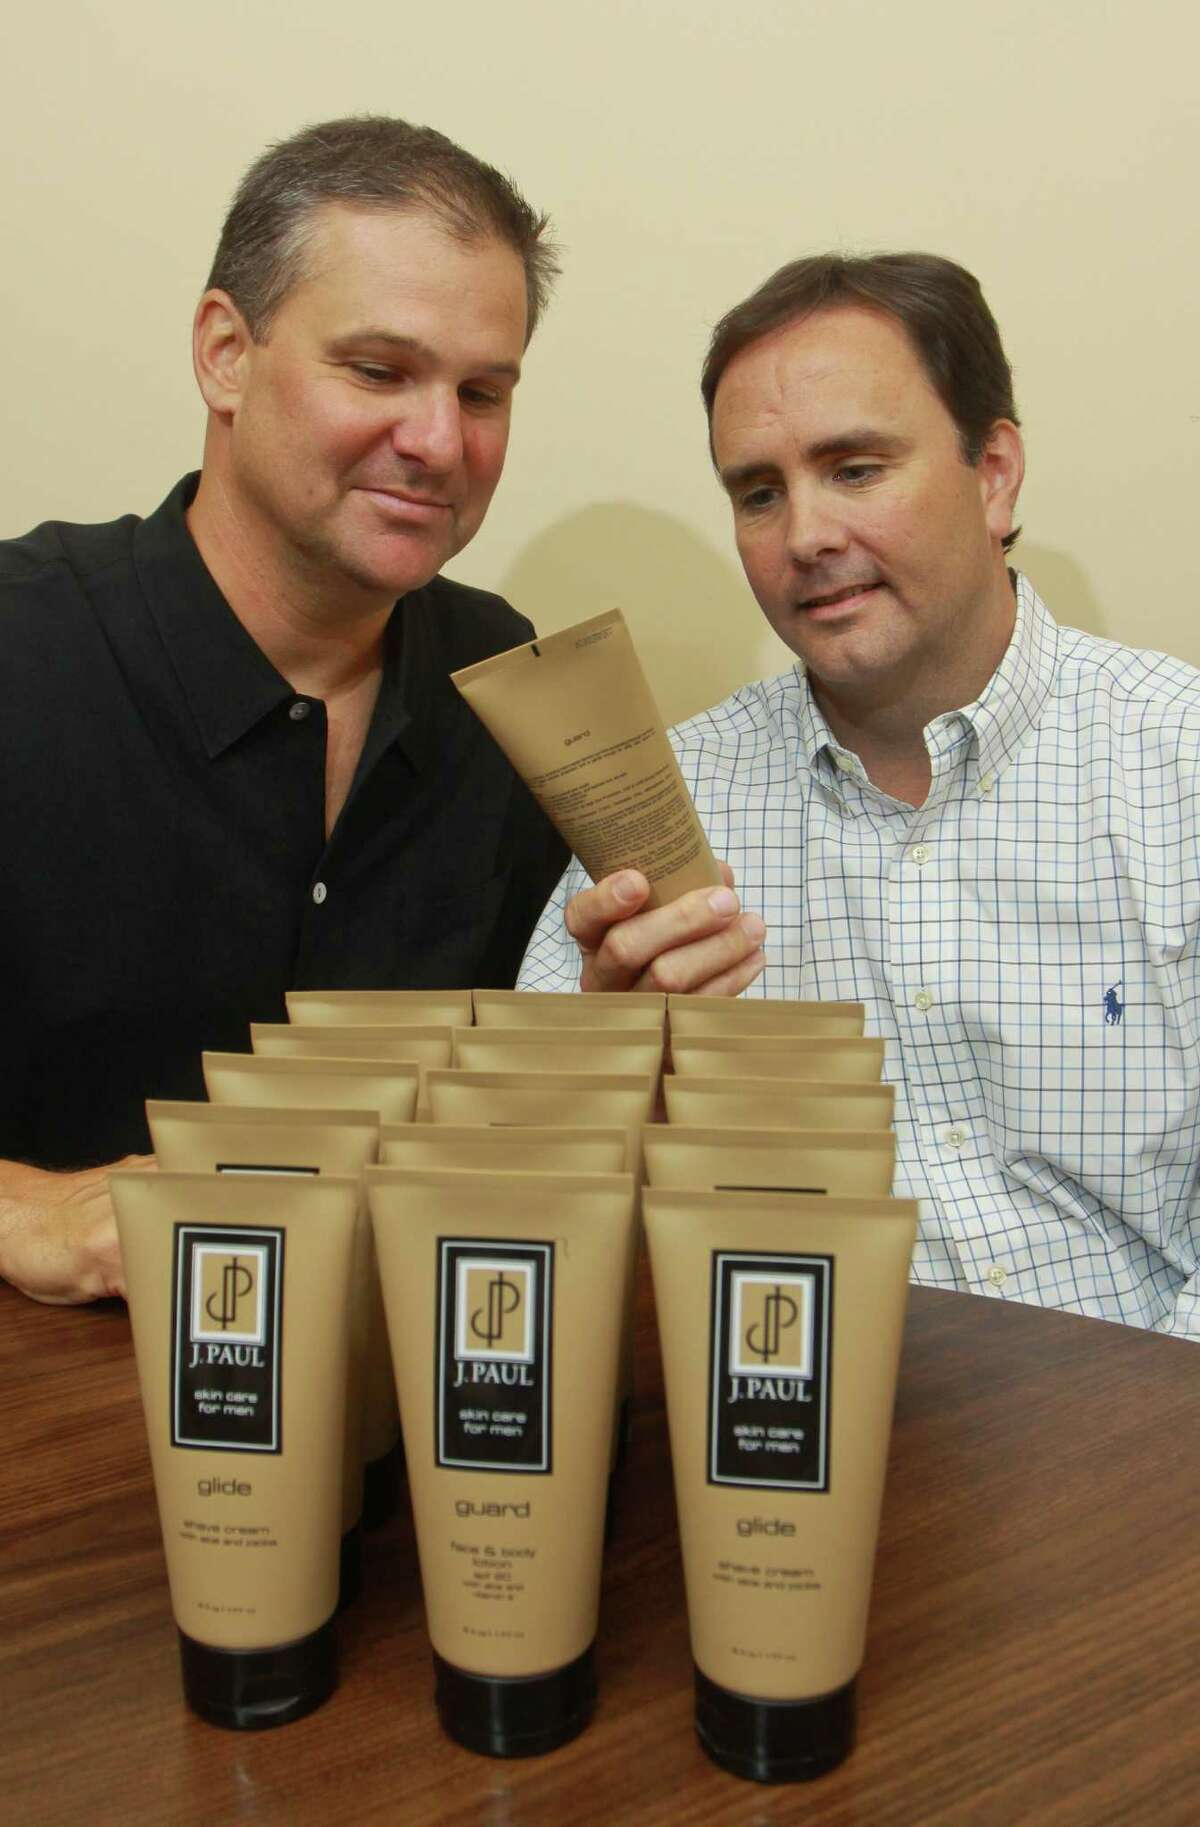 (For the Chronicle/Gary Fountain, September 4, 2012) Paul Strong, left, and Paul Looney, owners of J. Paul Skincare, with items from their product line. J. Paul Skincare is a skincare line for men.